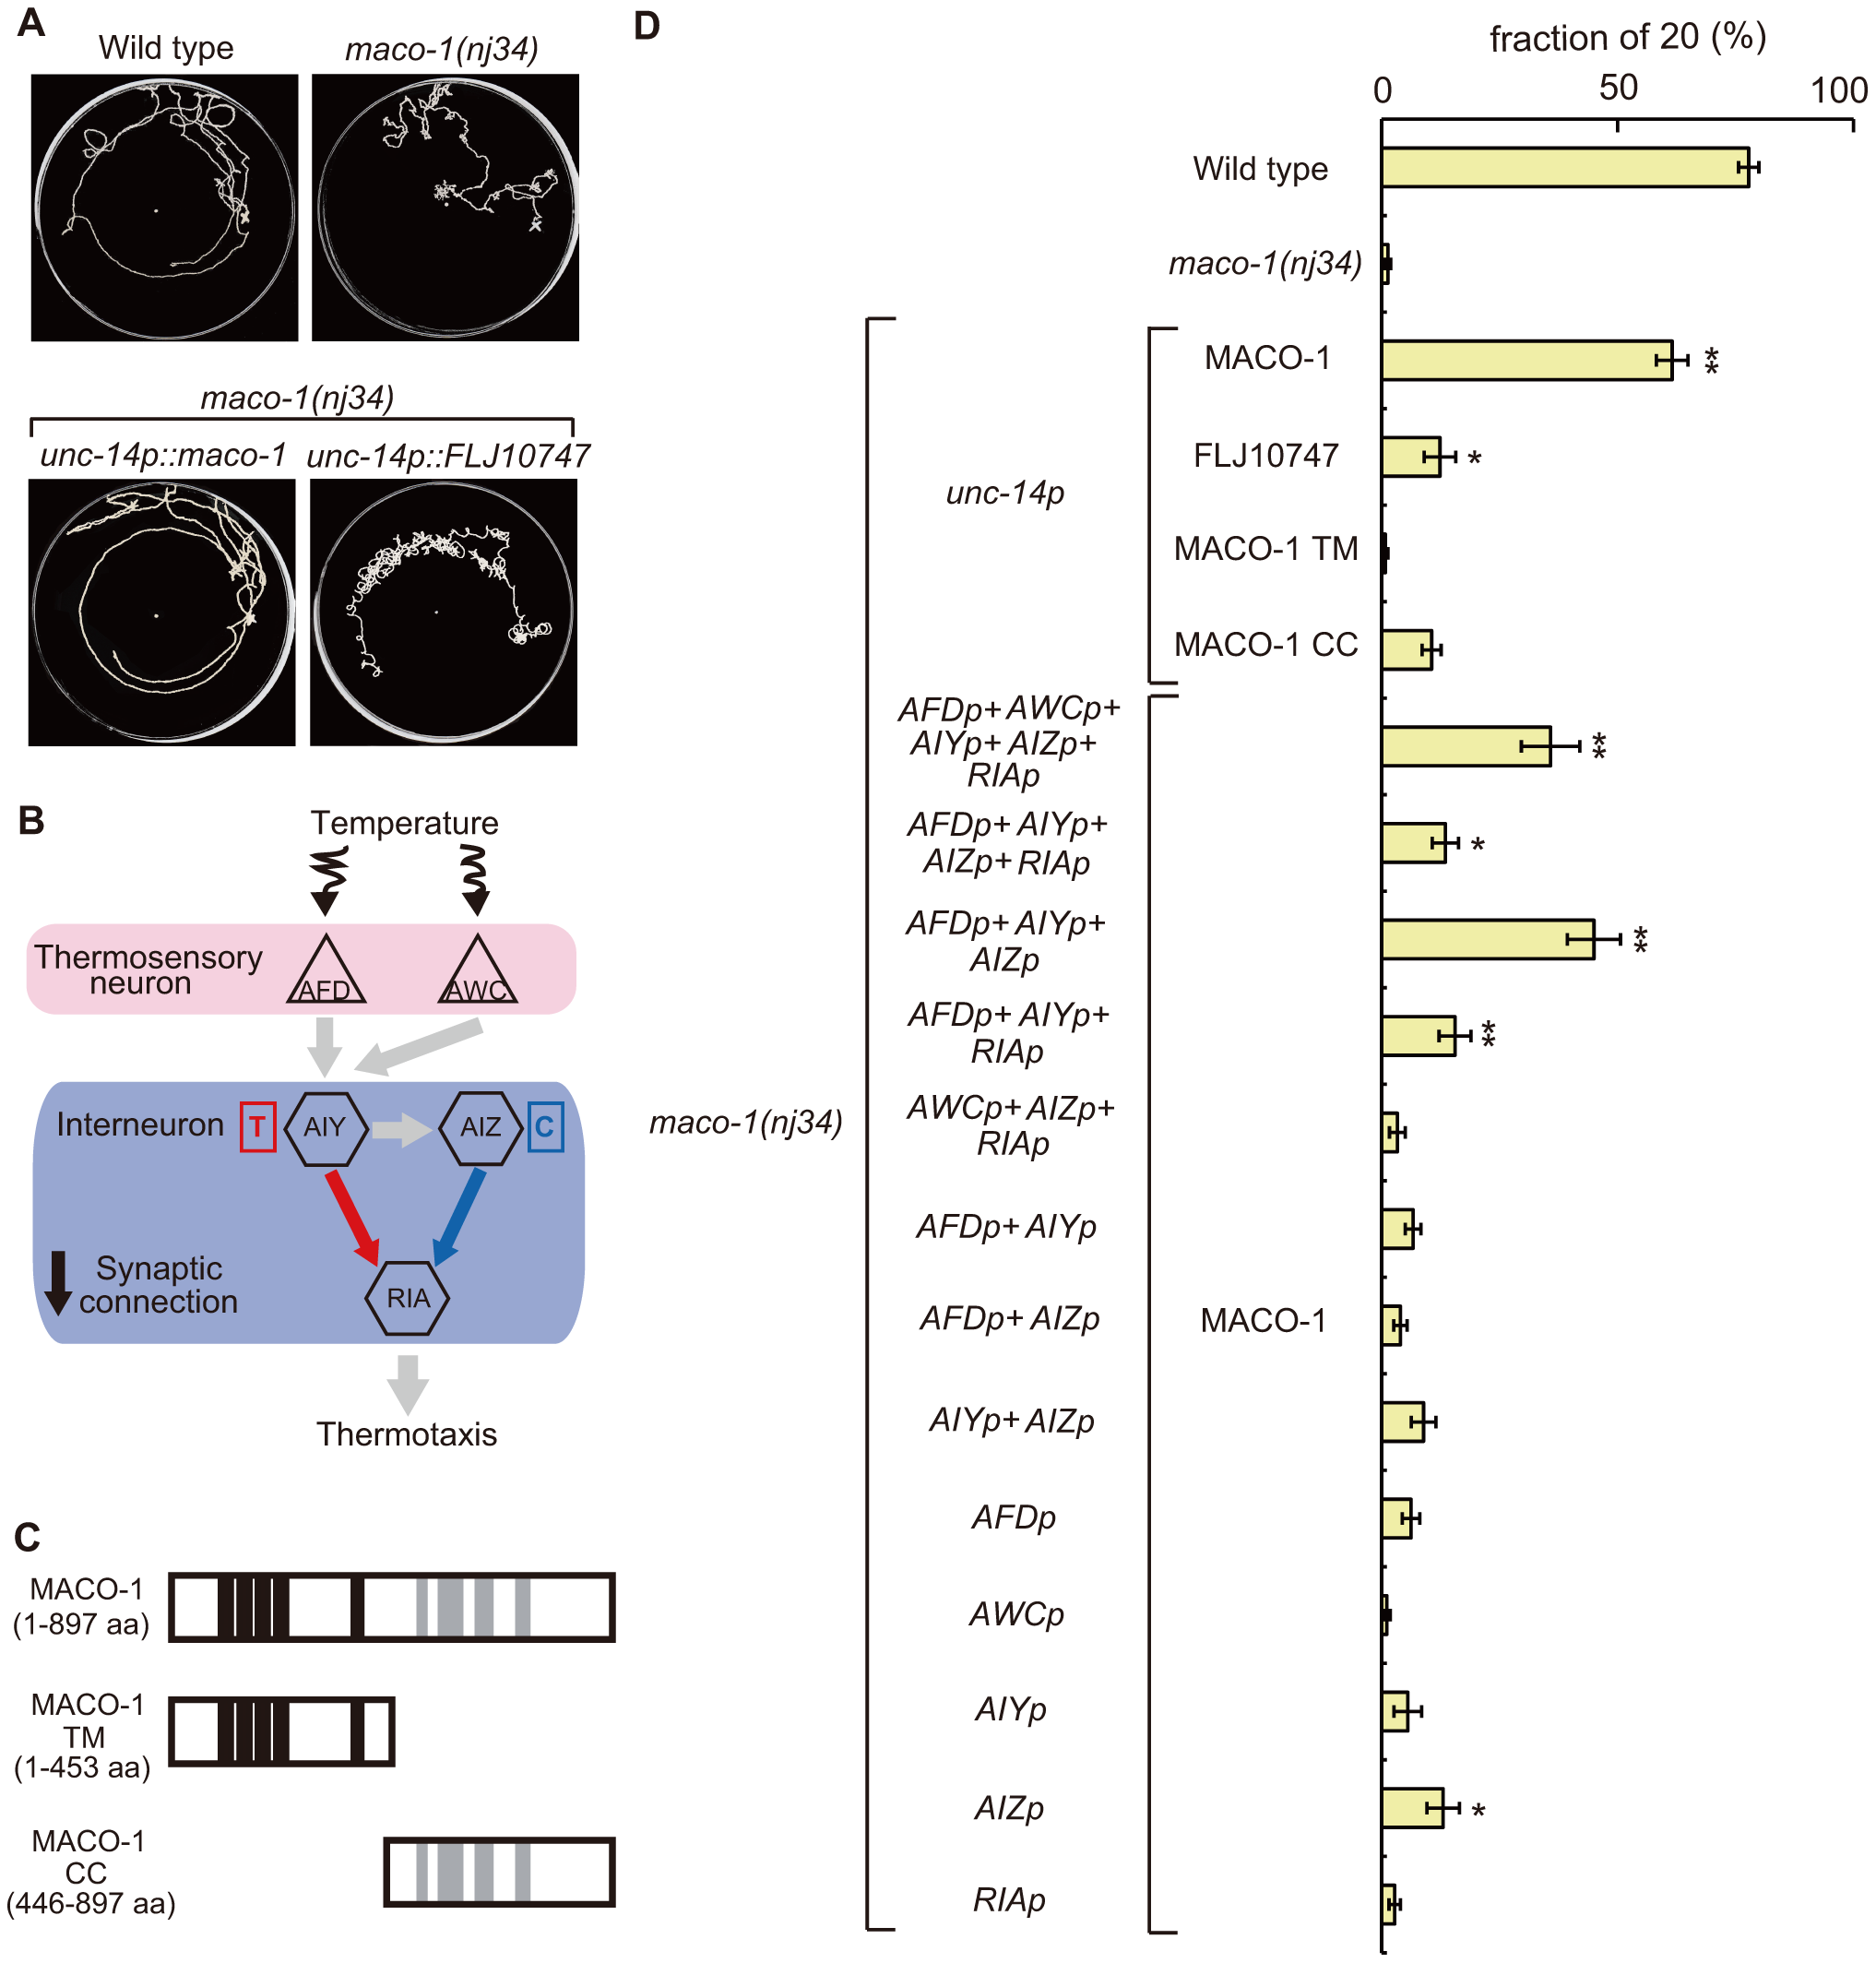 Cell-specific rescue experiments for thermotaxis defects in <i>maco-1(nj34)</i> mutants.